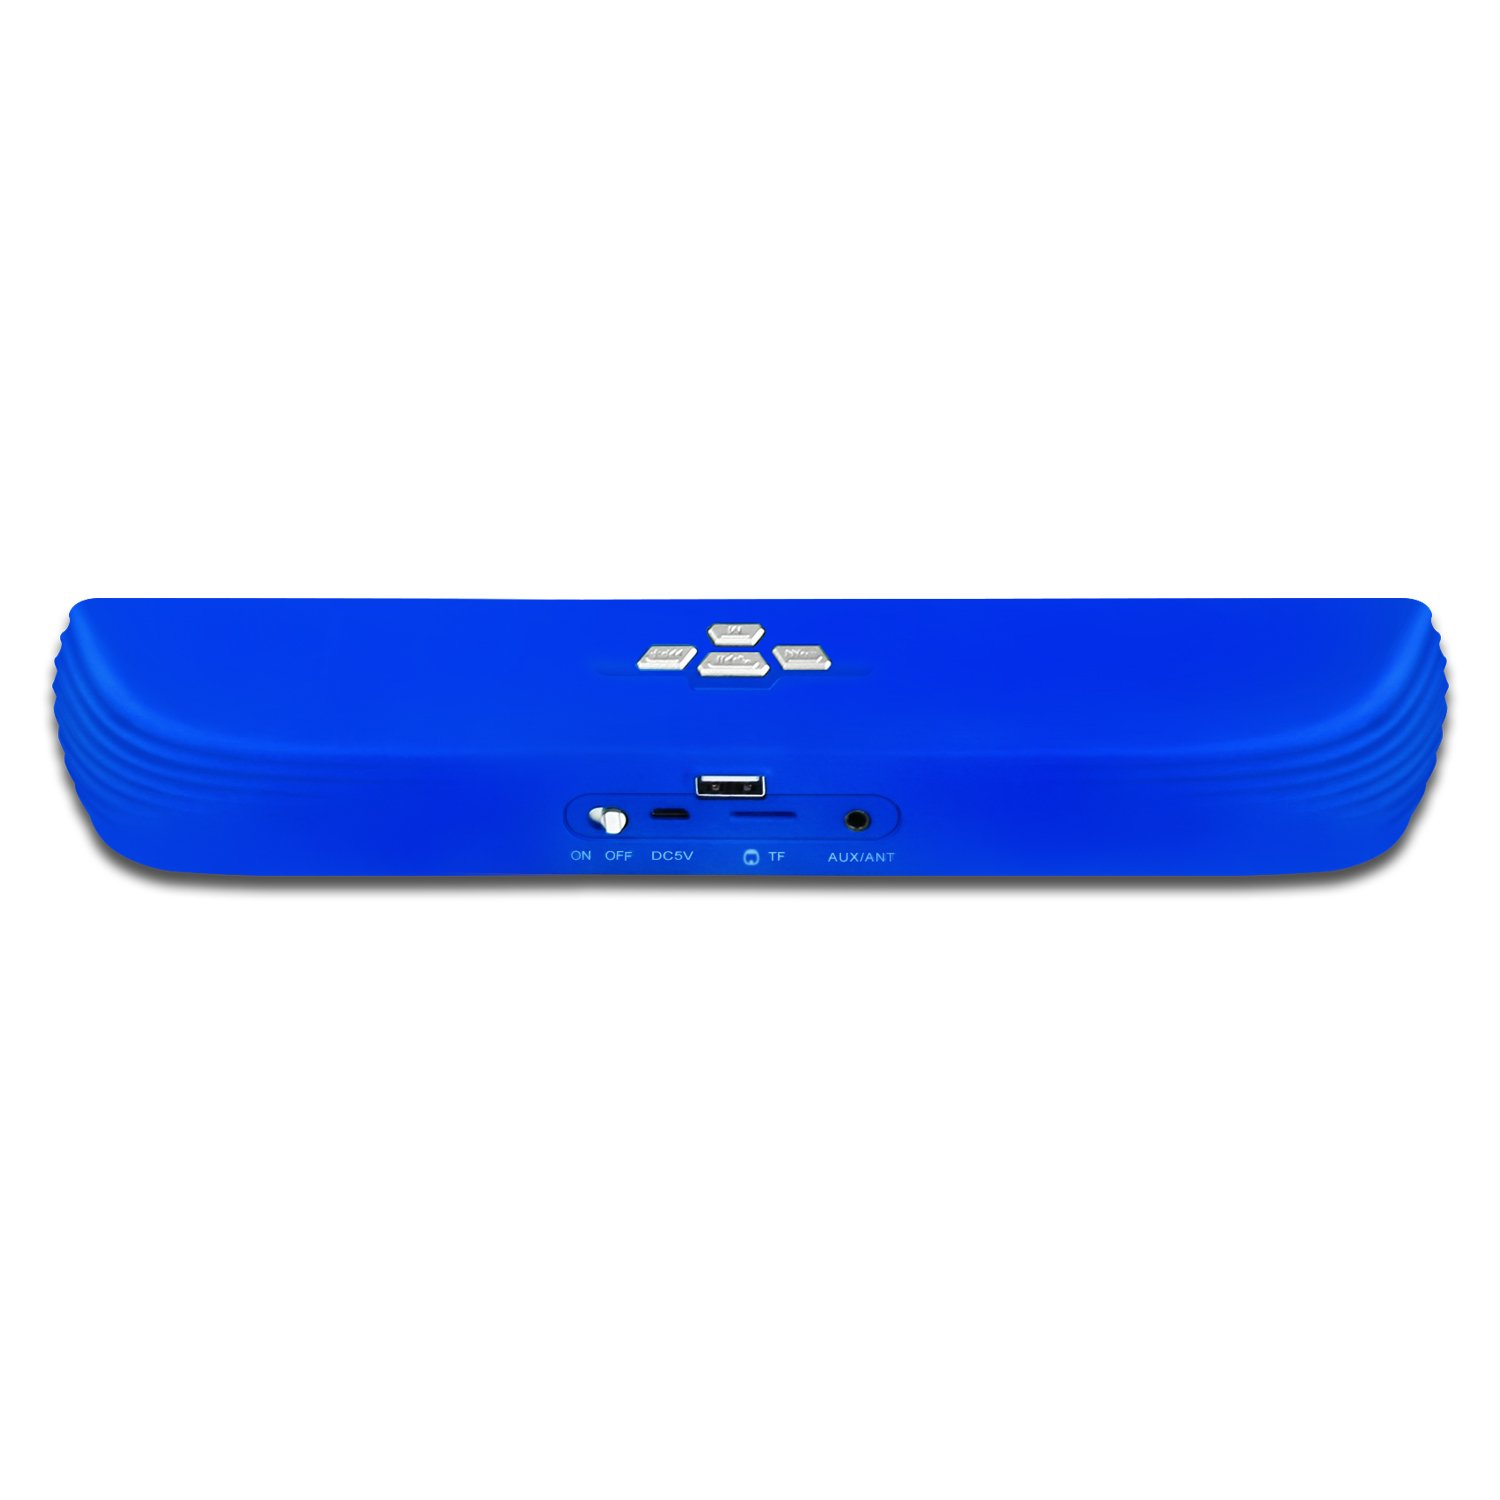 SCS ETC Wireless Bluetooth Speaker, 2 x3w Dual Drivers with Crystal, Clear and Huge Stereo Sound for PC, Laptop, Mobile, iPhone, iPad, Samsung etc (Navy Blue)